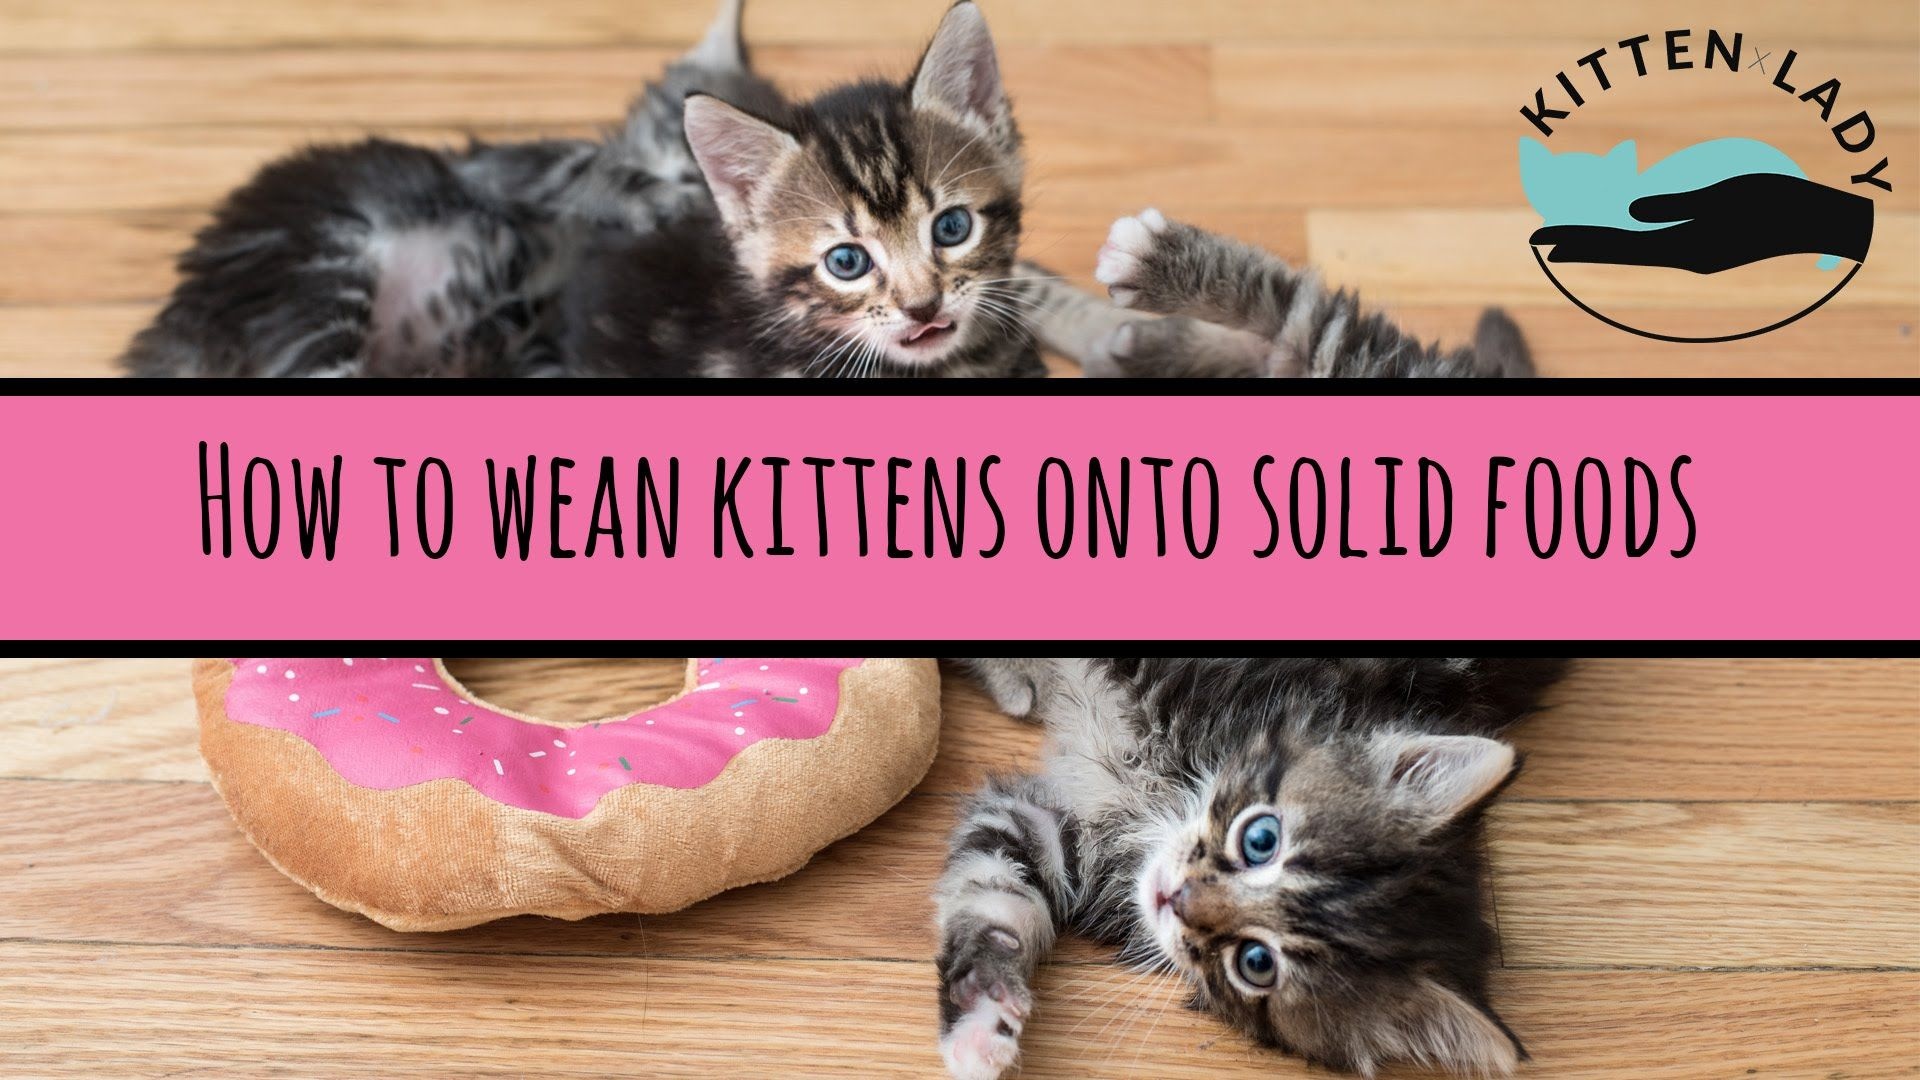 How To Wean Kittens Feeding Kittens Baby Kittens Kitten Care